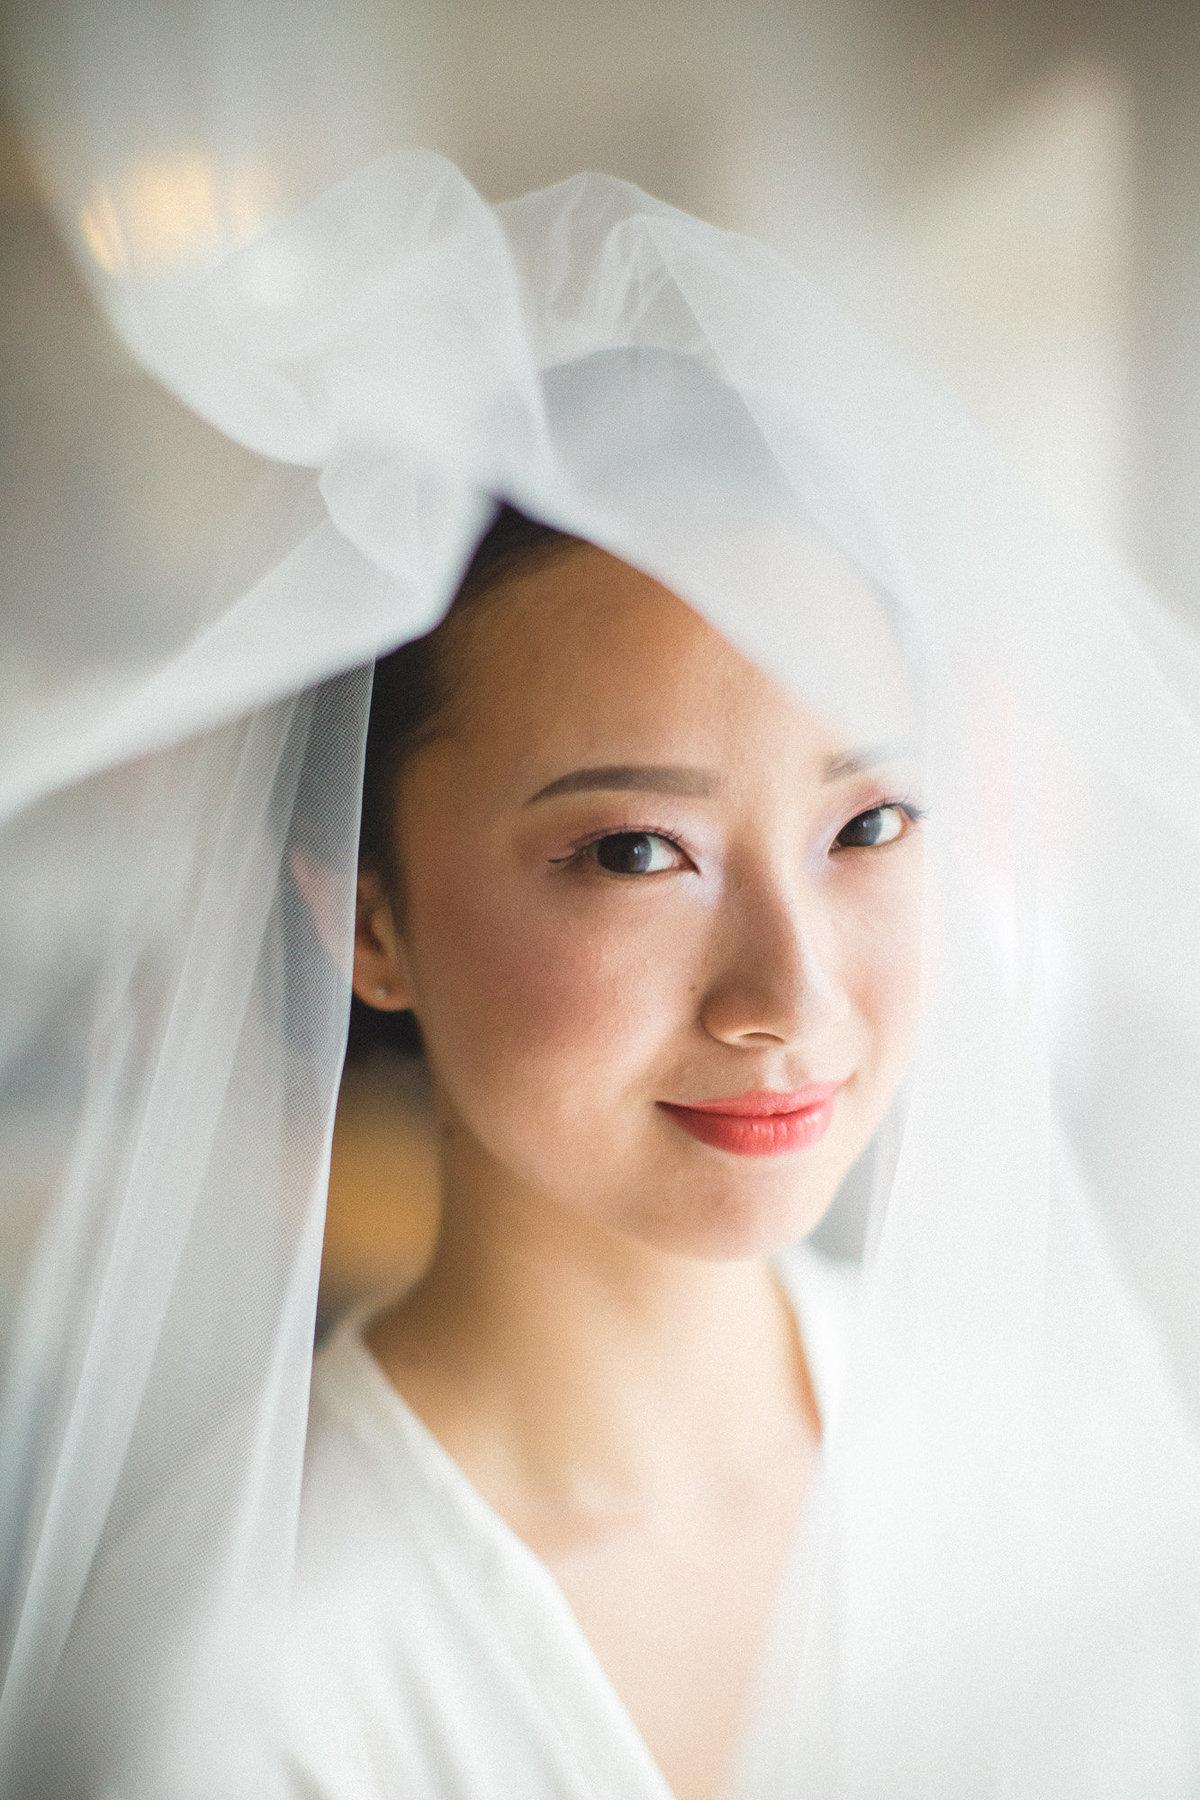 Columbus Ohio OSU Alumni Club Wedding -Yuru + Jingwei - DiBlasio Photo-8